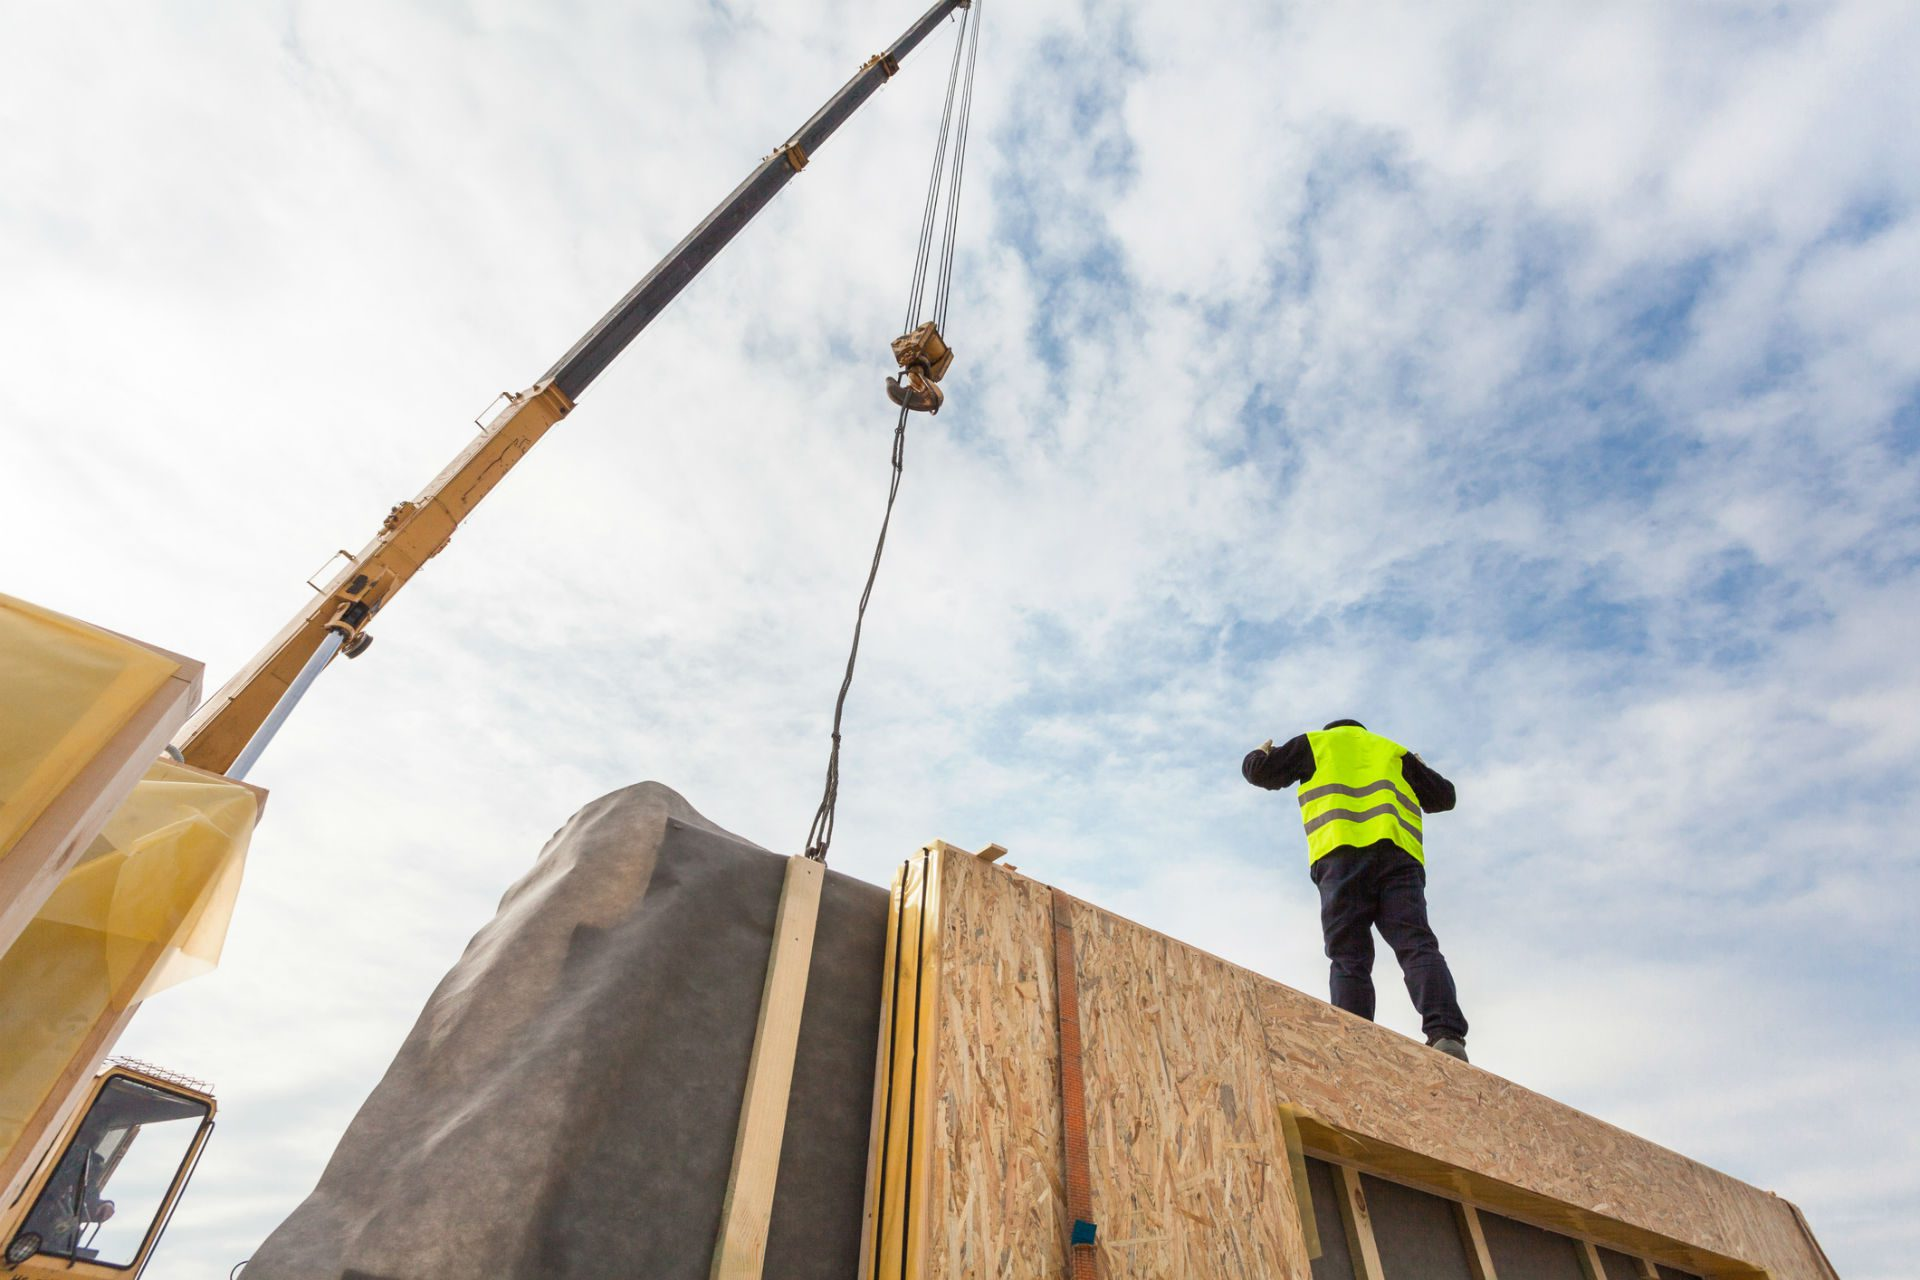 New-build housing standards are about to get even higher in the UK